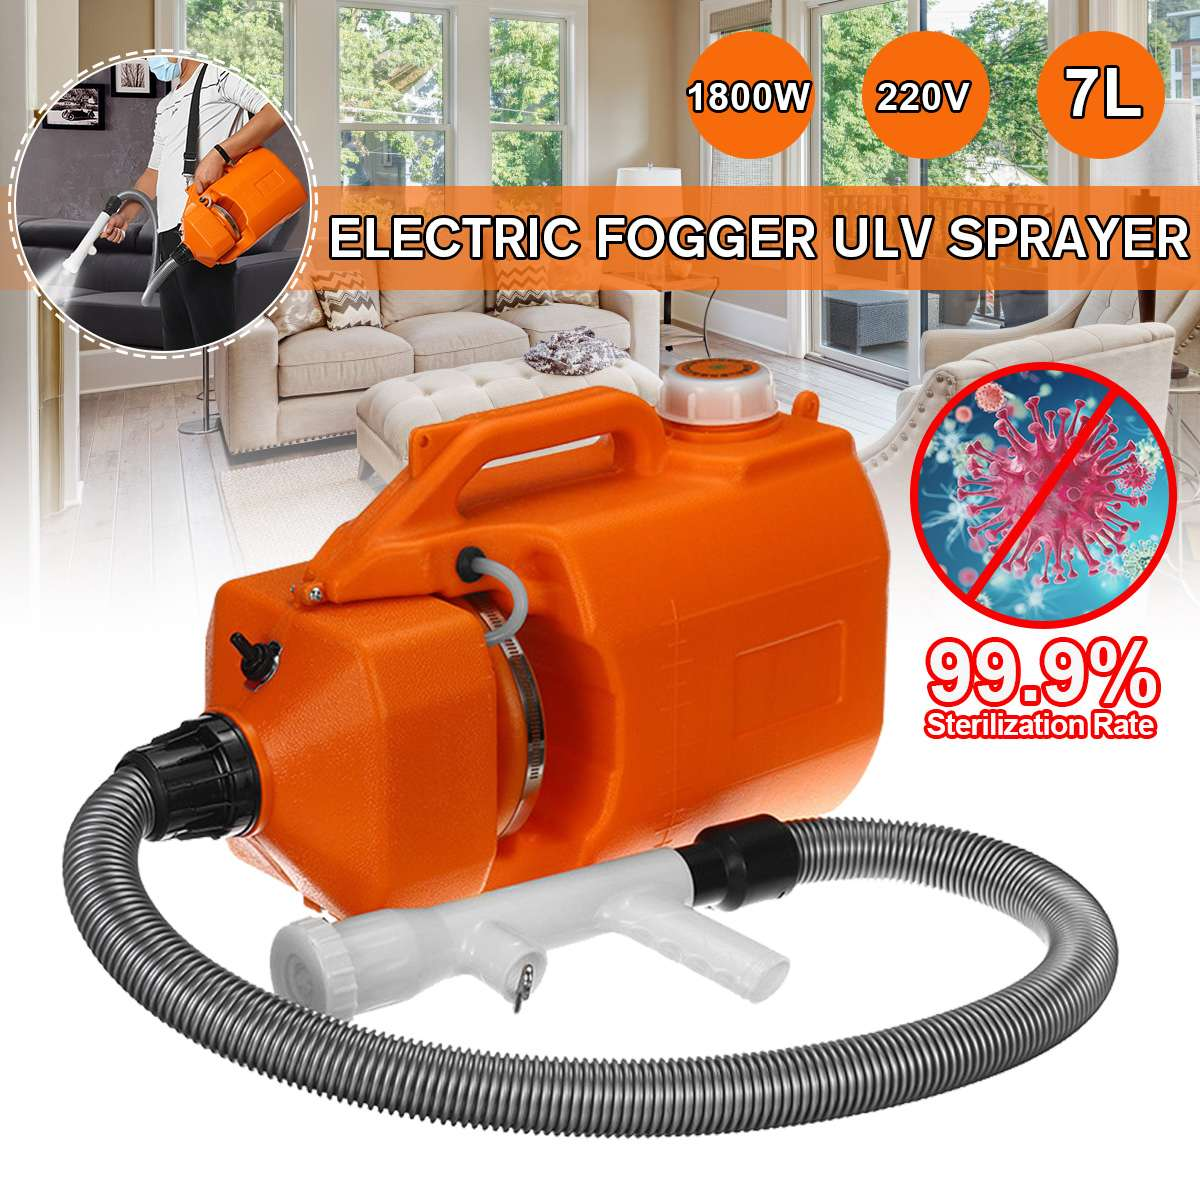 7L 220V 1800W Electric ULV Sprayer Fogger Machine Cold Mosquito Fogging Machine Ultra Low Capacity Fogger Disinfection Funnel